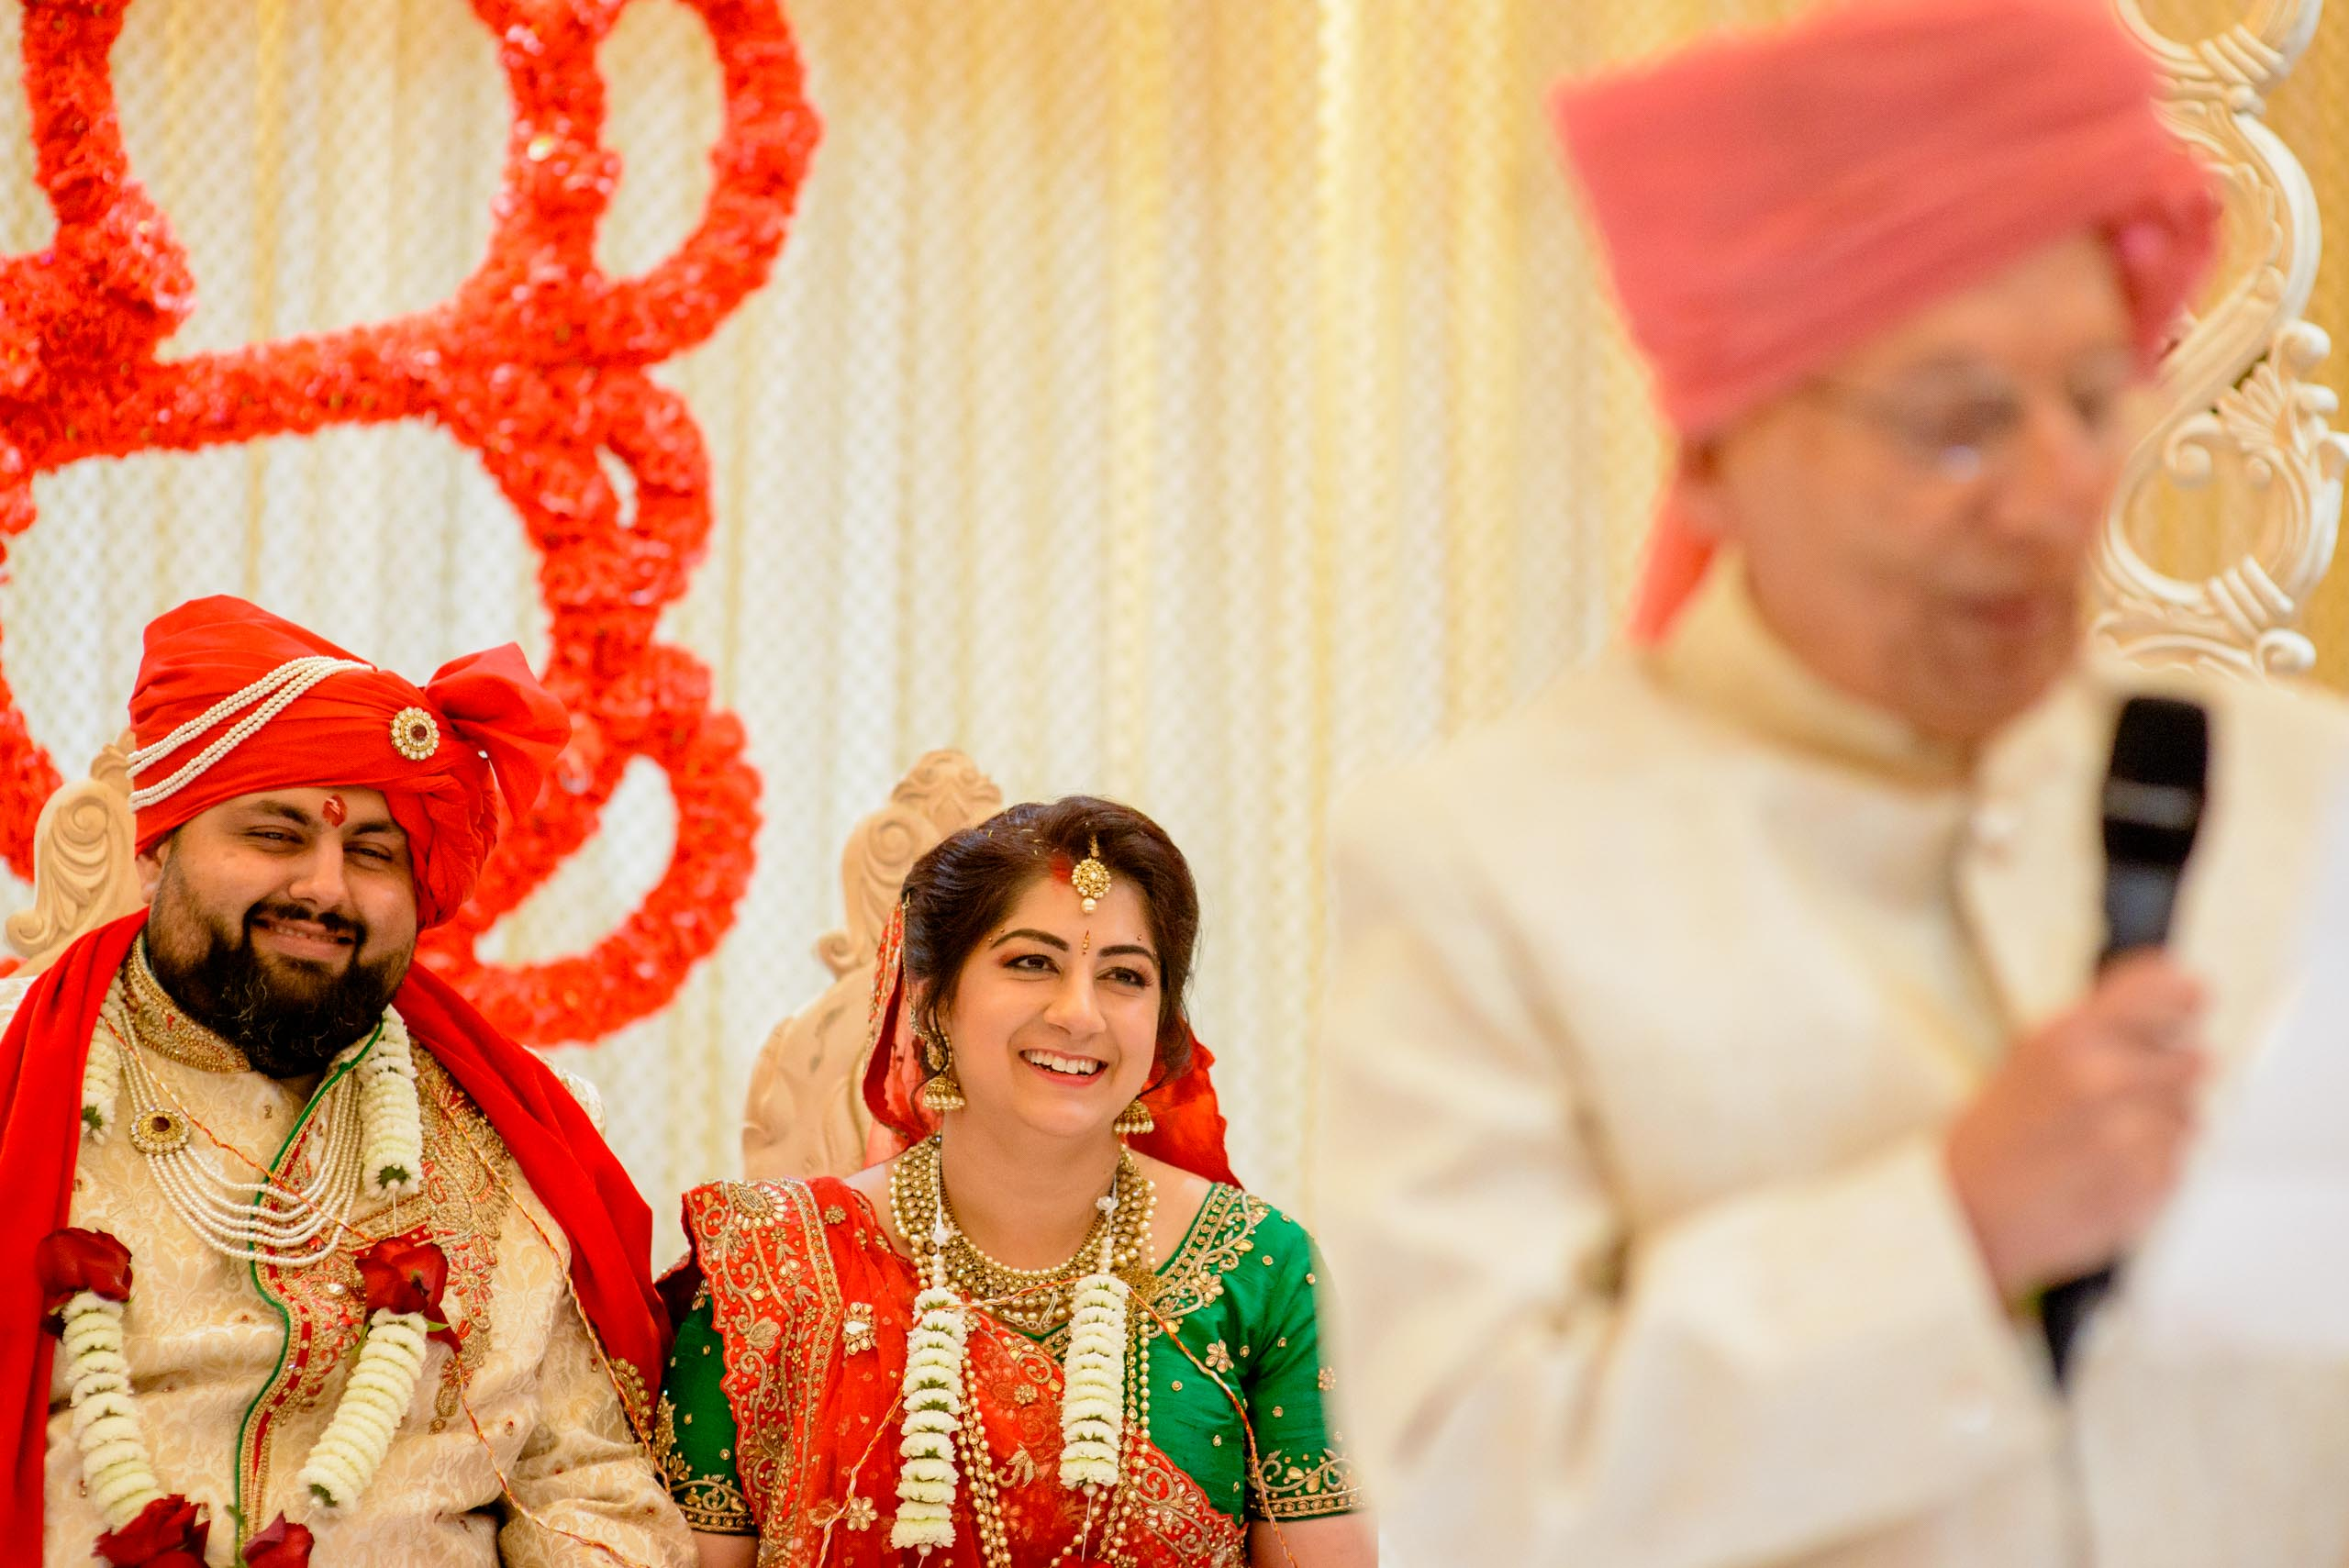 Amit&Amee-preview-edenmoments-66